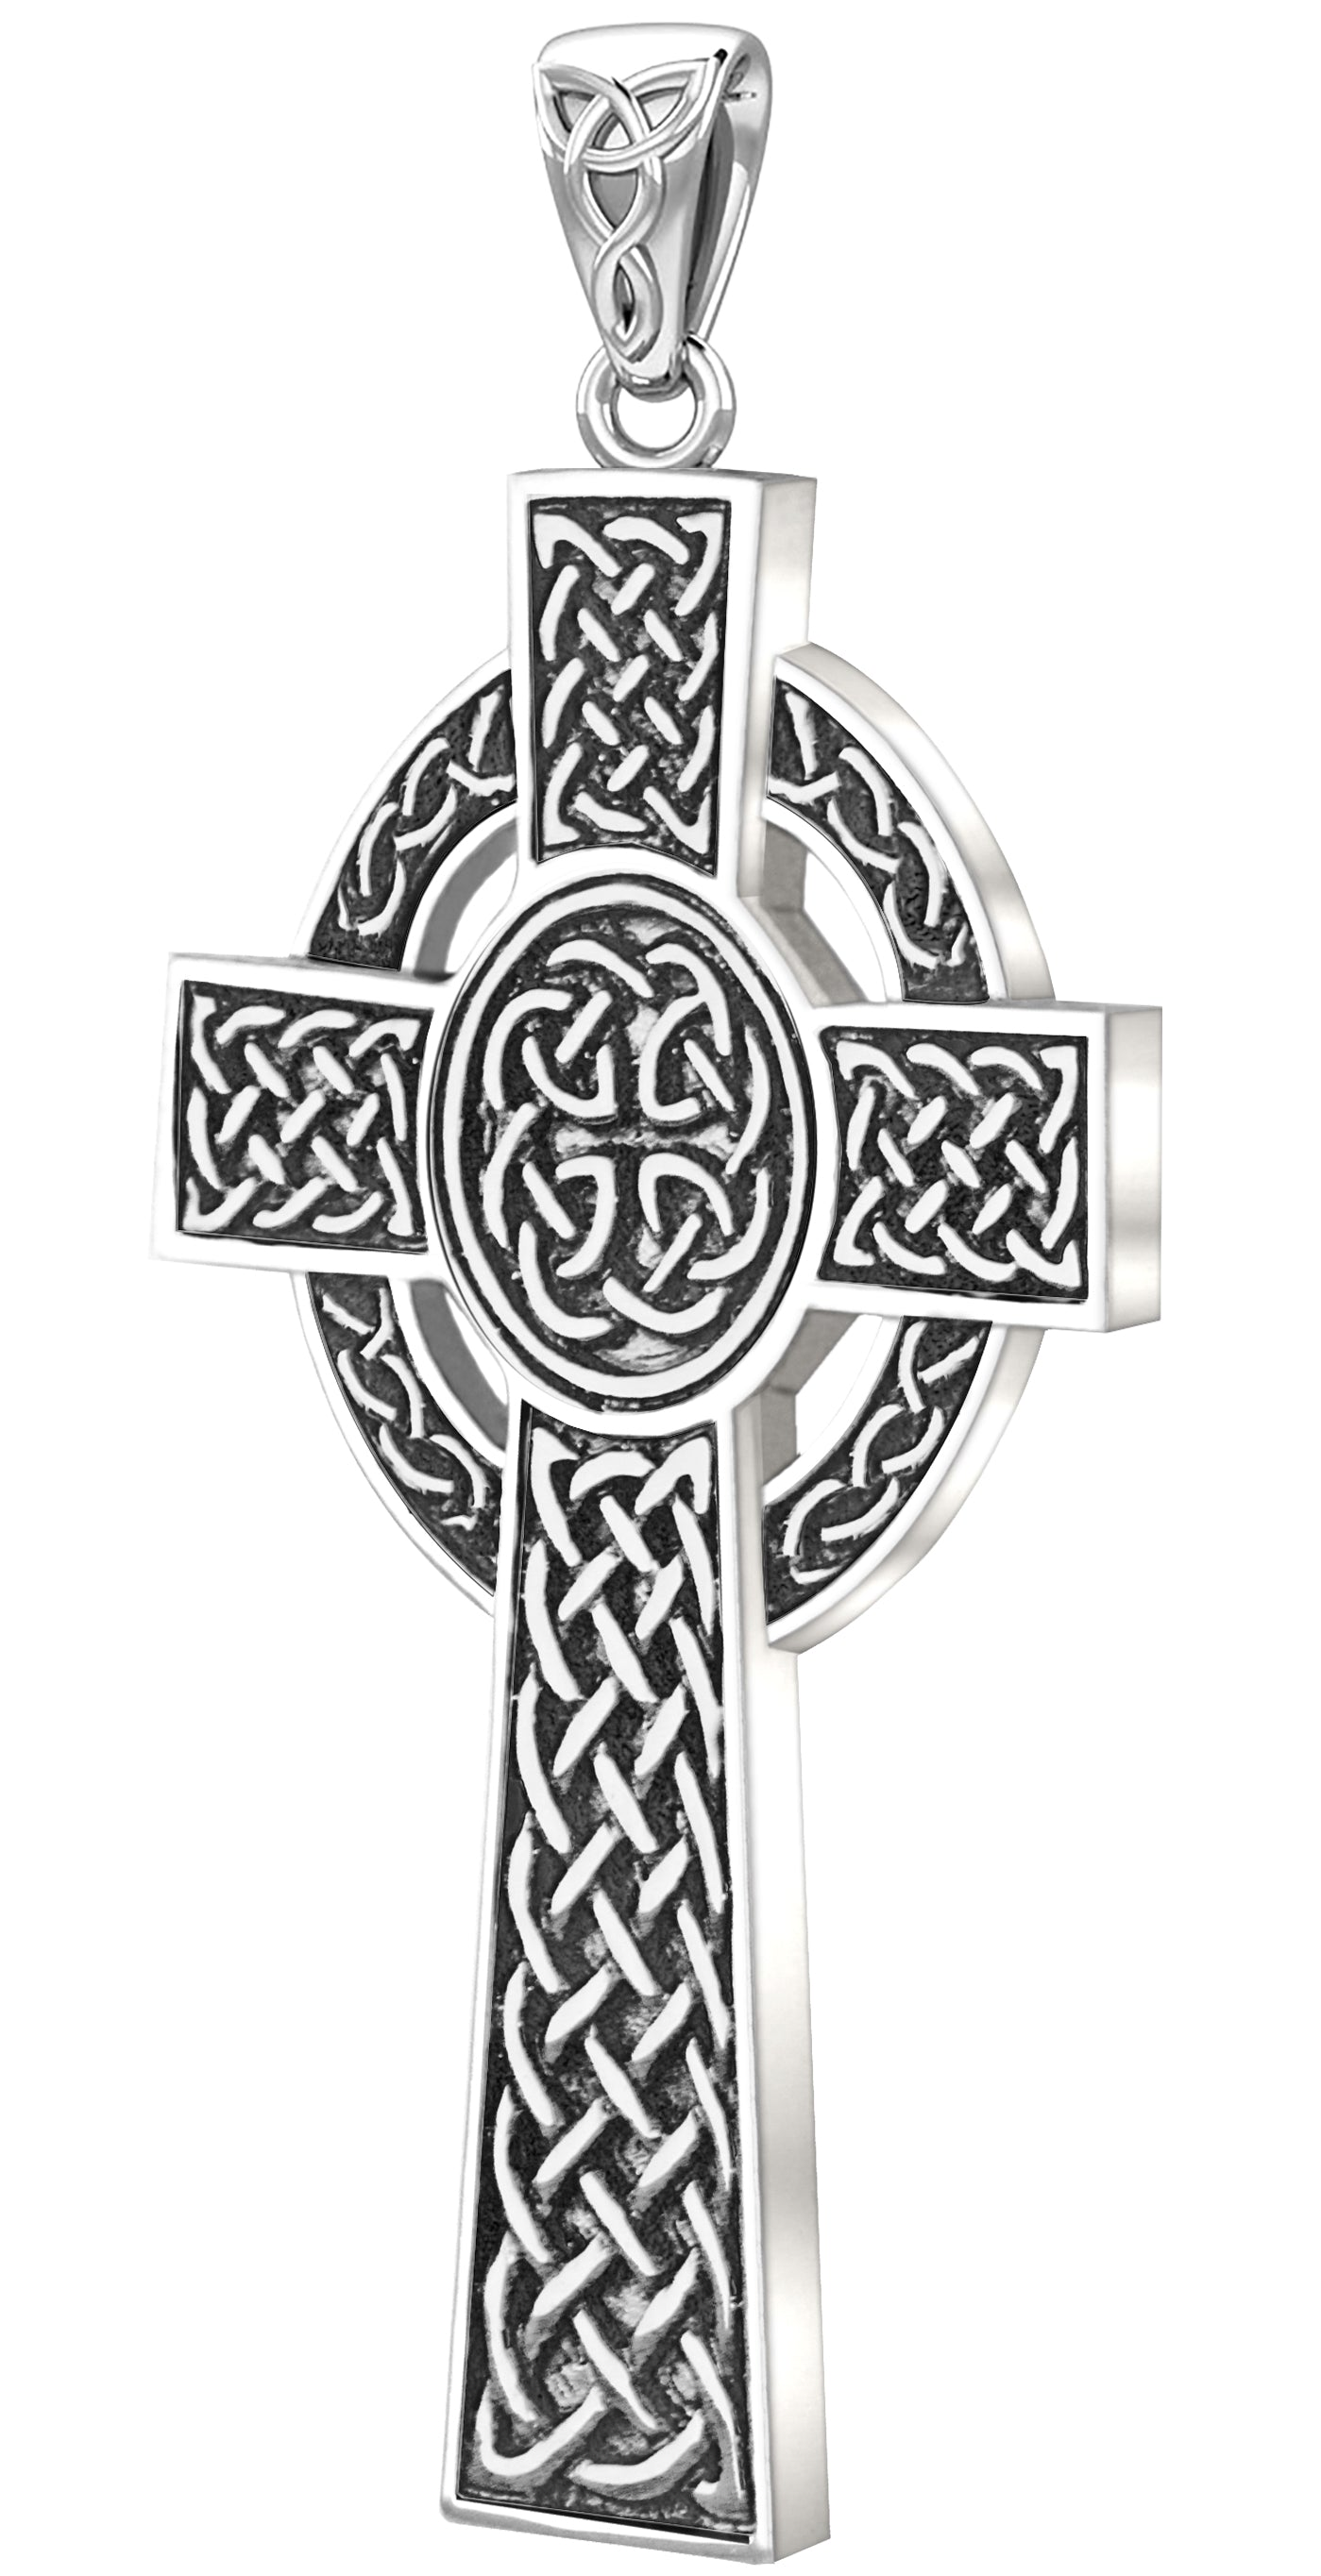 Celtic Cross Necklace Of Sterling Silver - No Chain